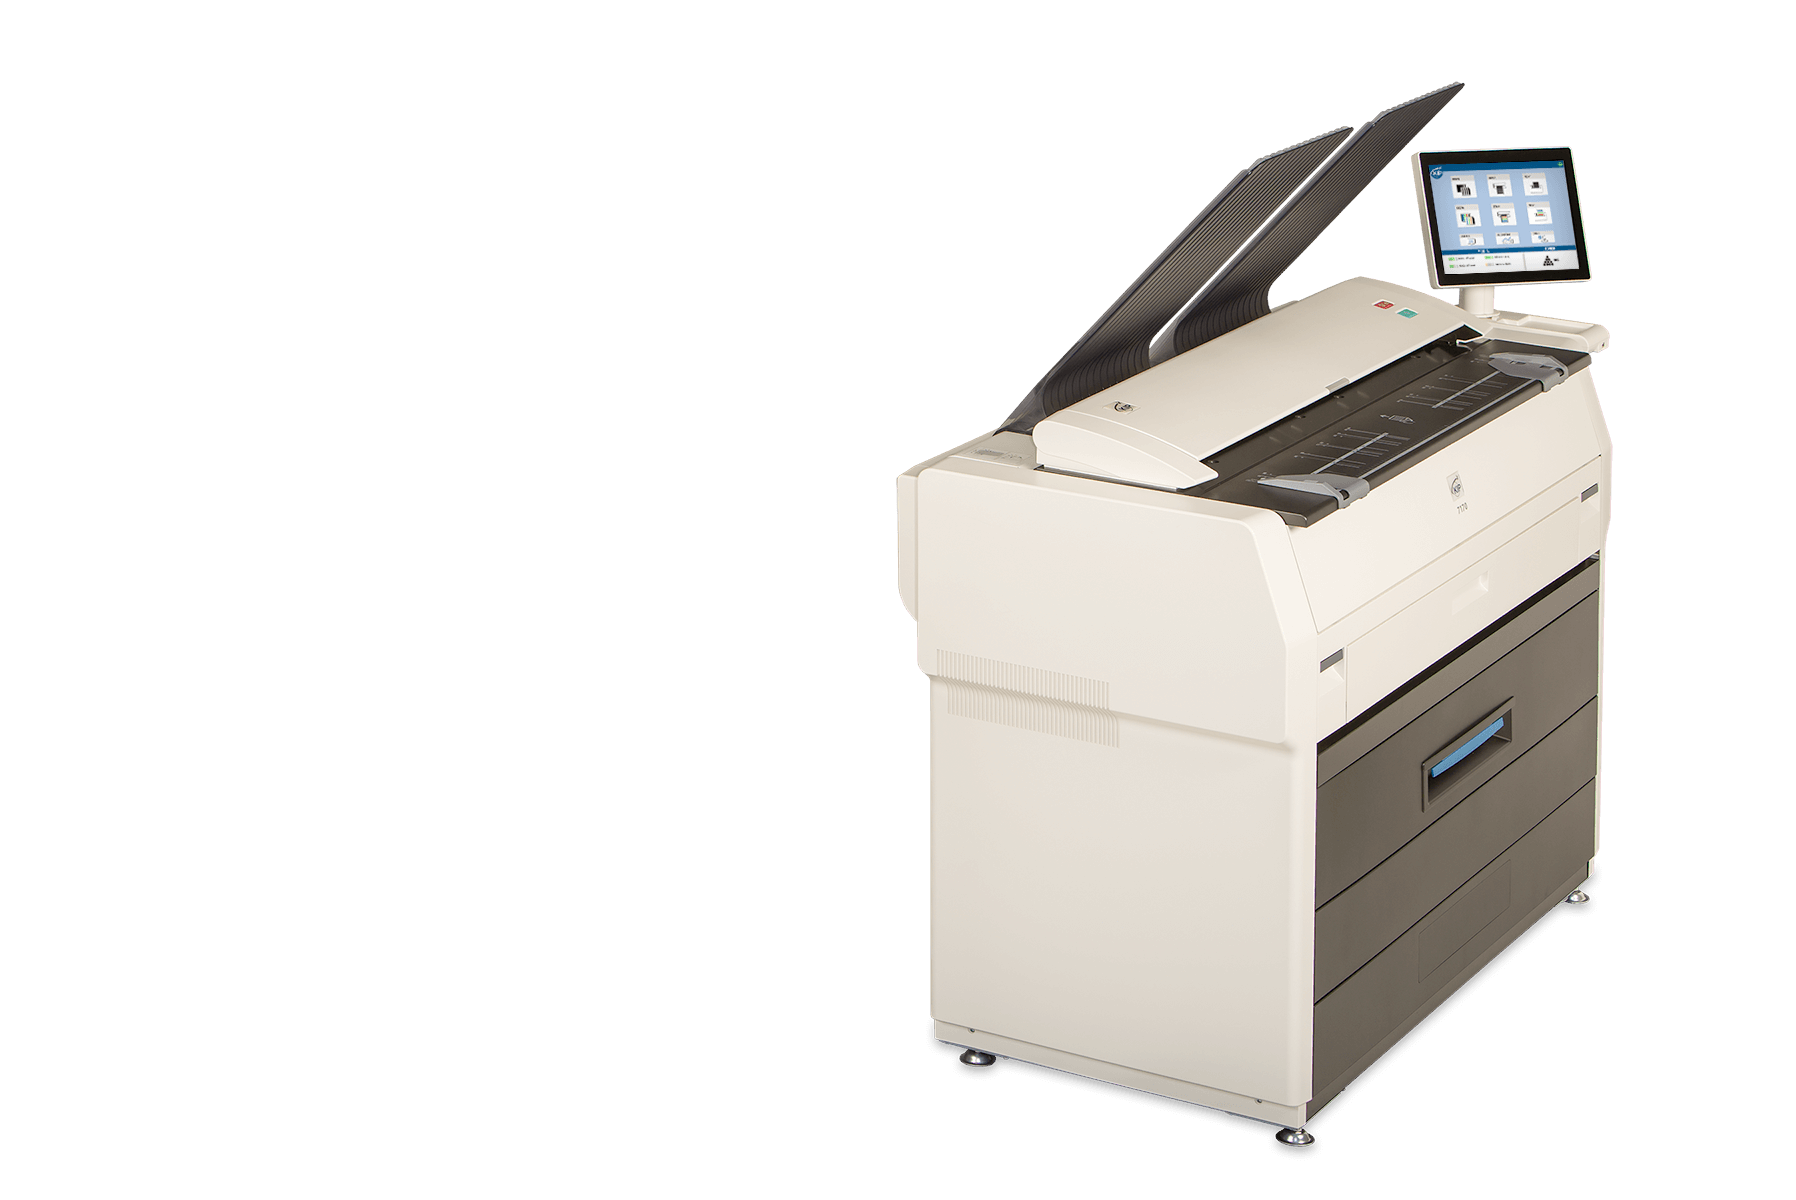 KIP 7170 professional printer